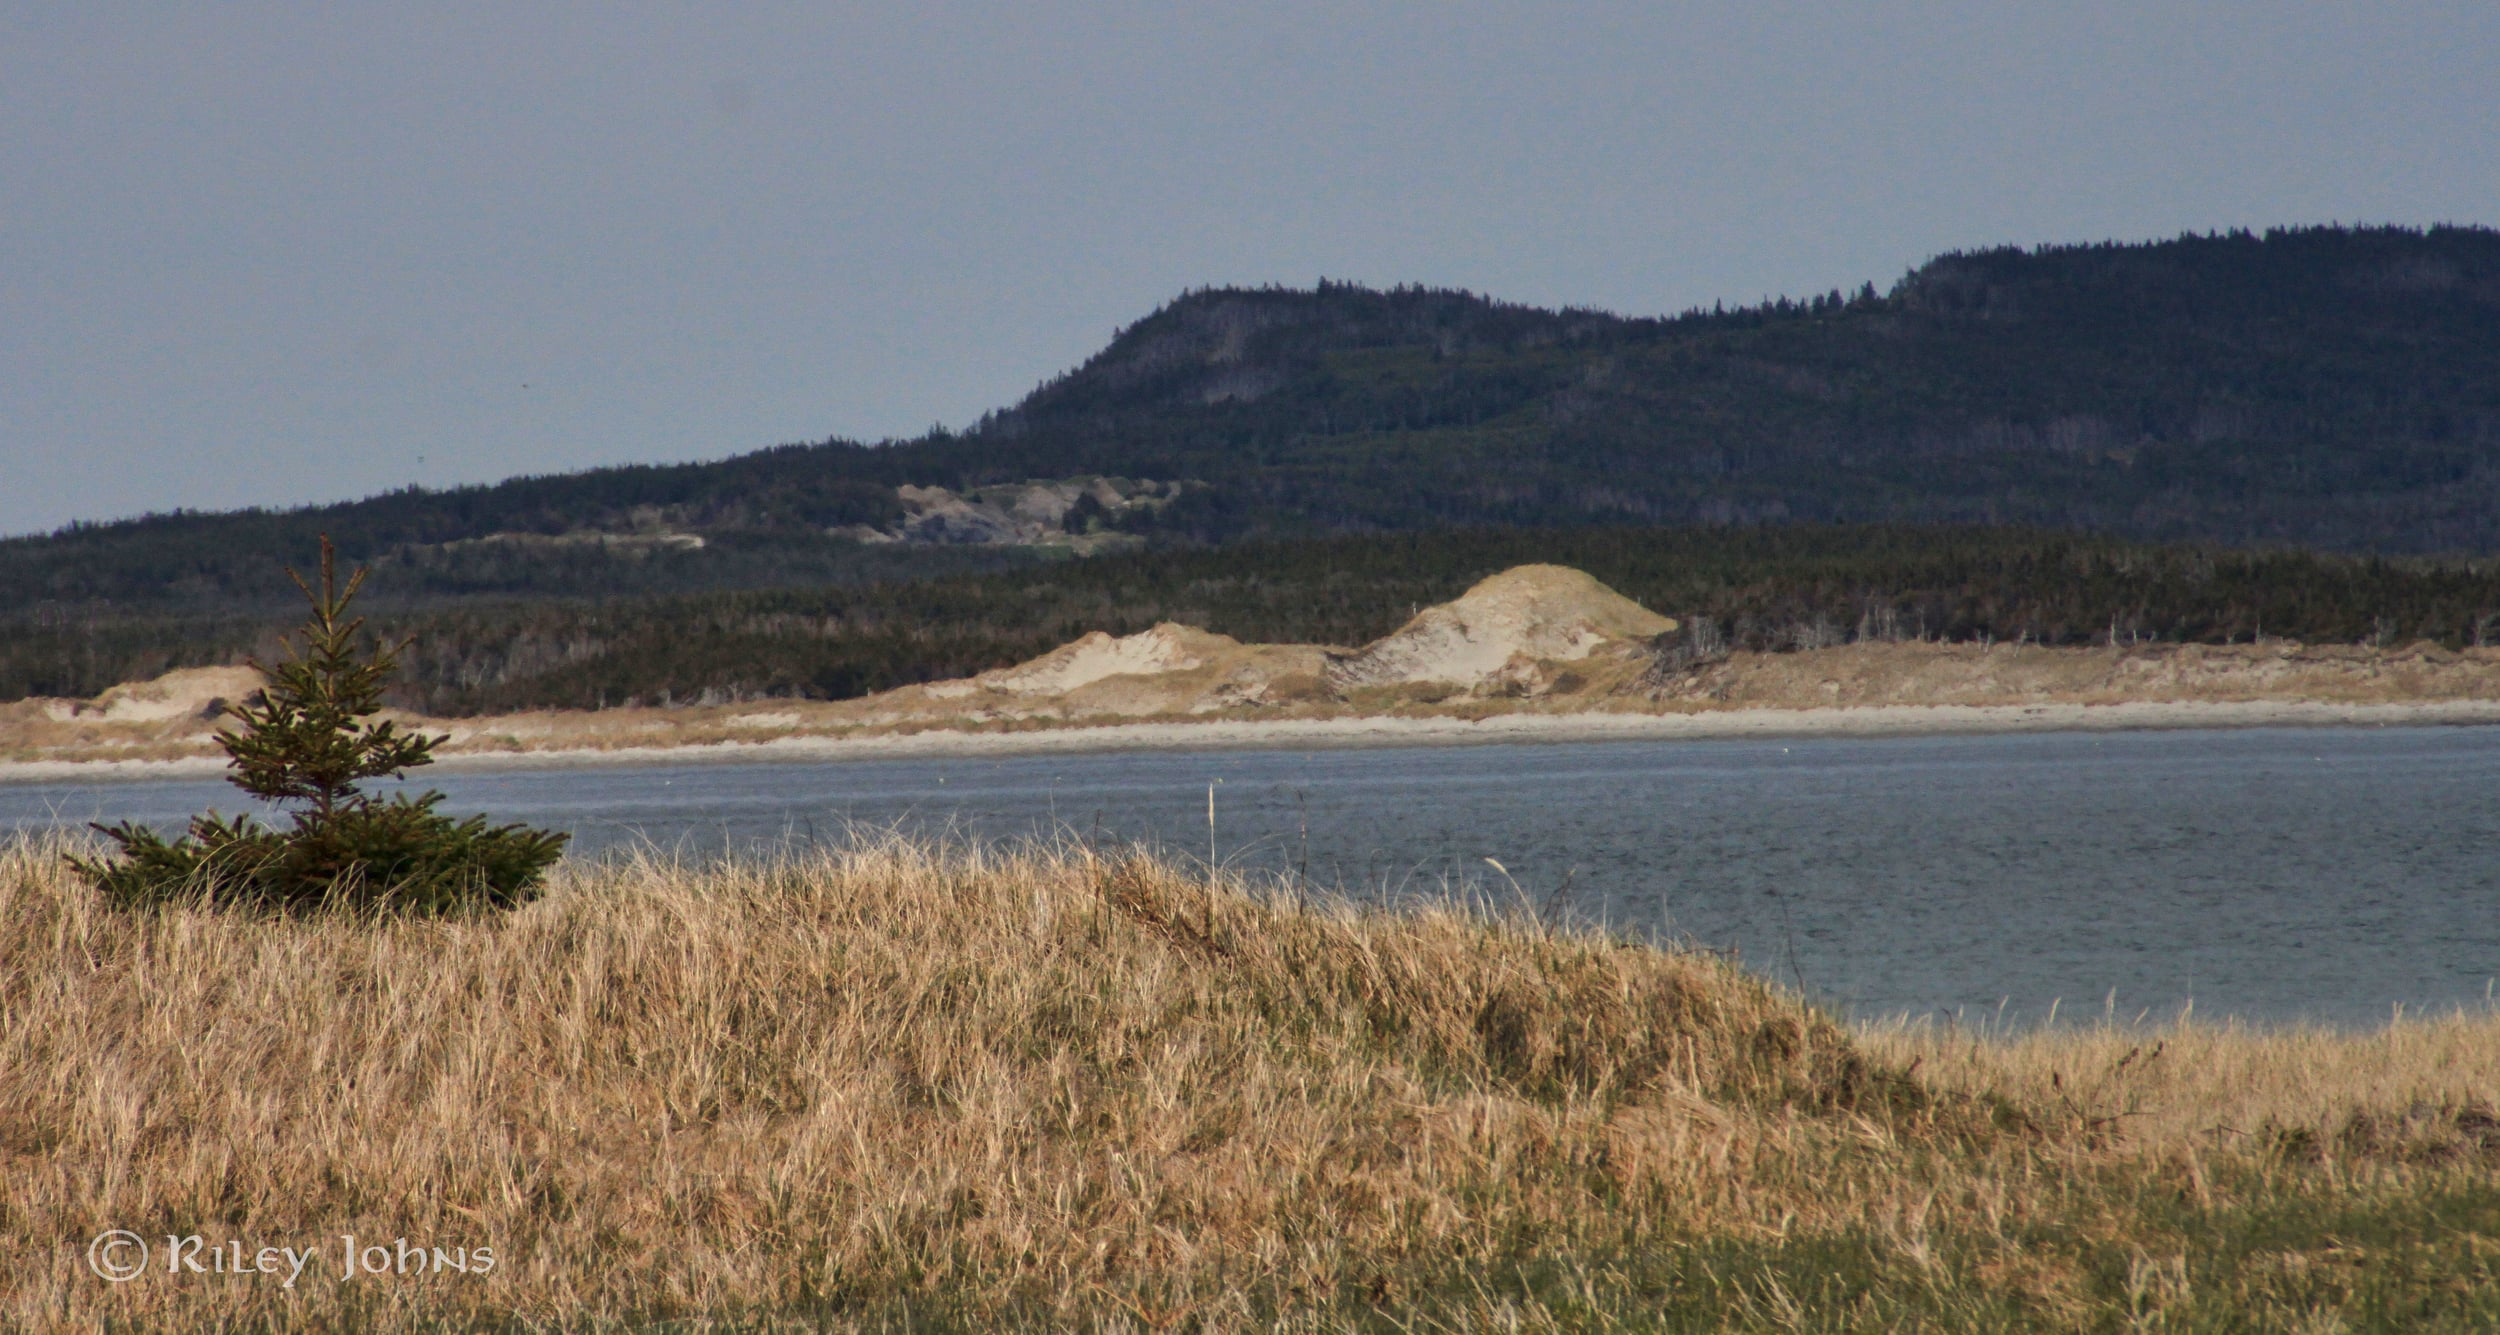 """Towering blowout dune from a distance. Can you say """"St Enodoc""""?"""